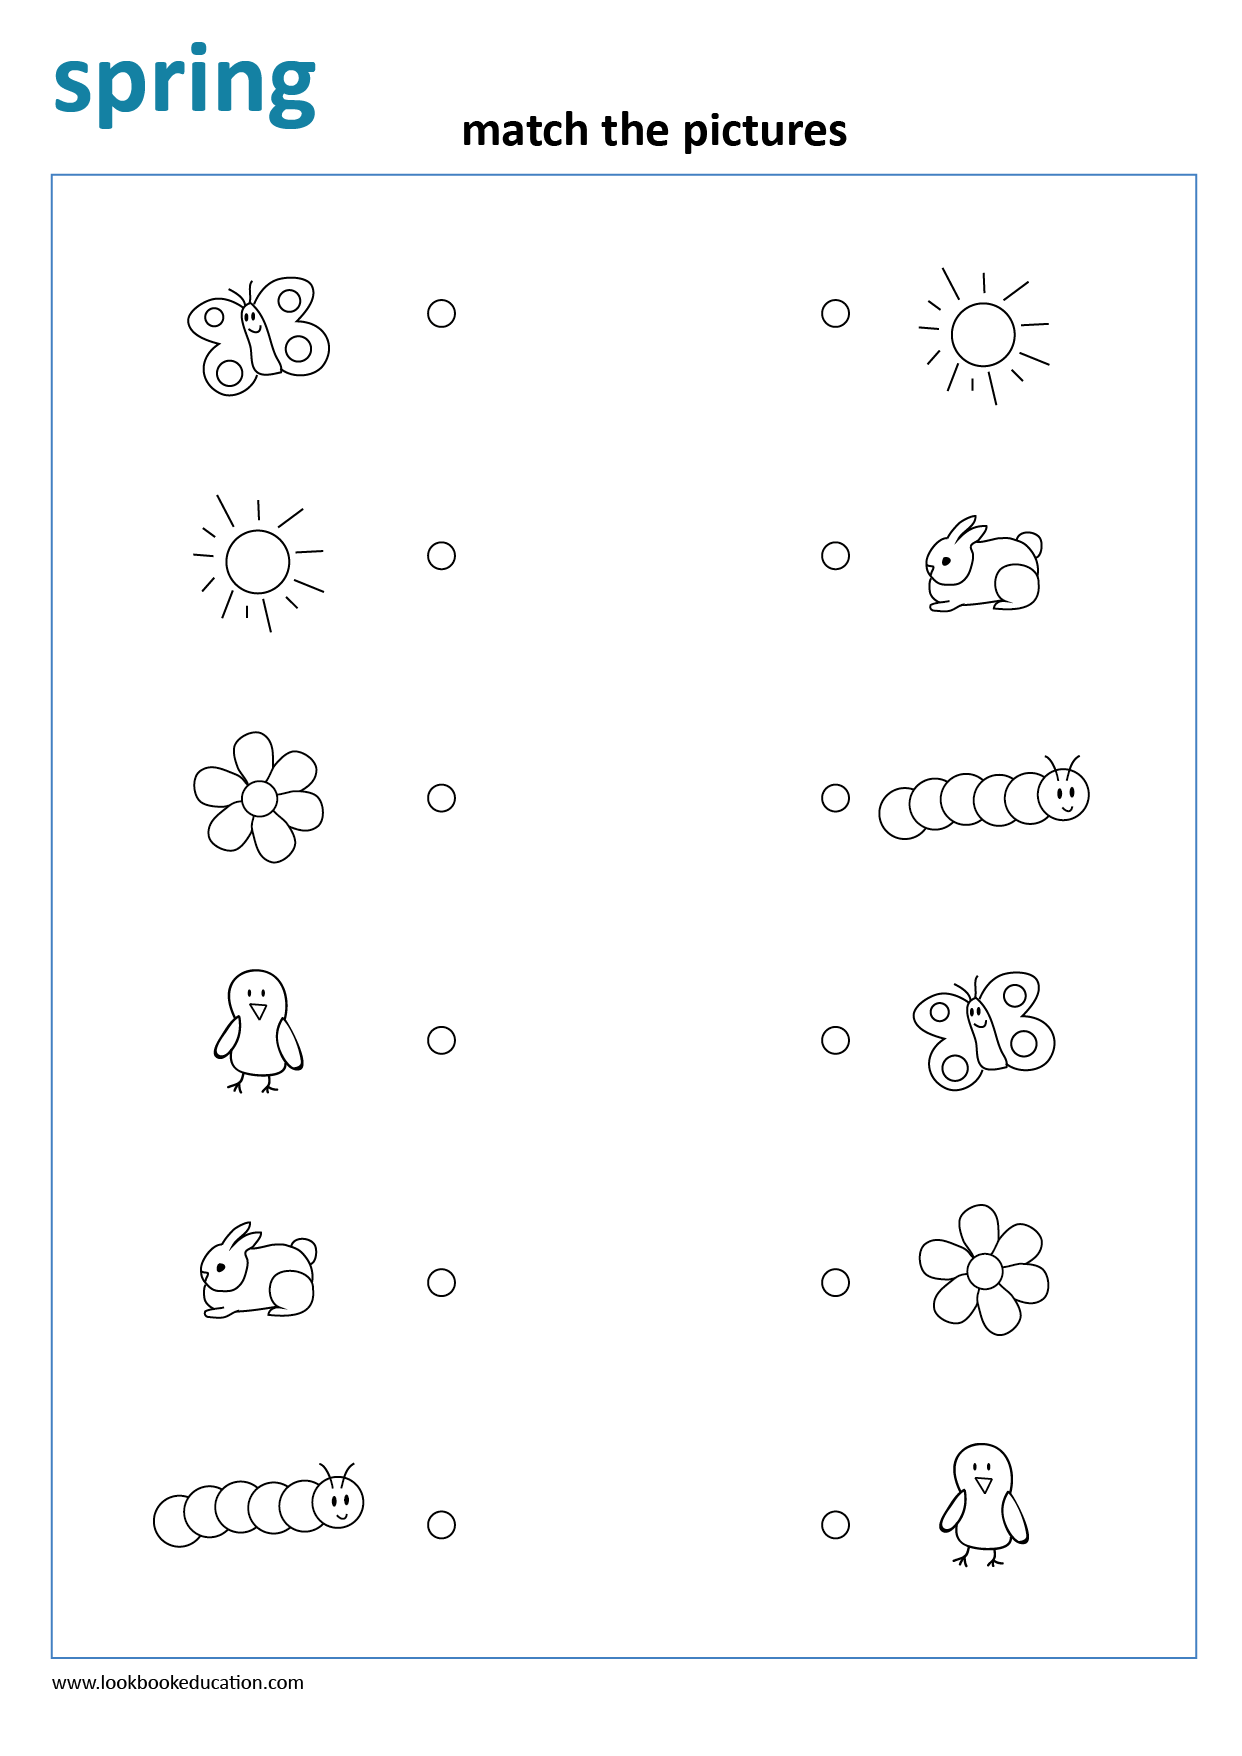 Worksheet Matching Spring In